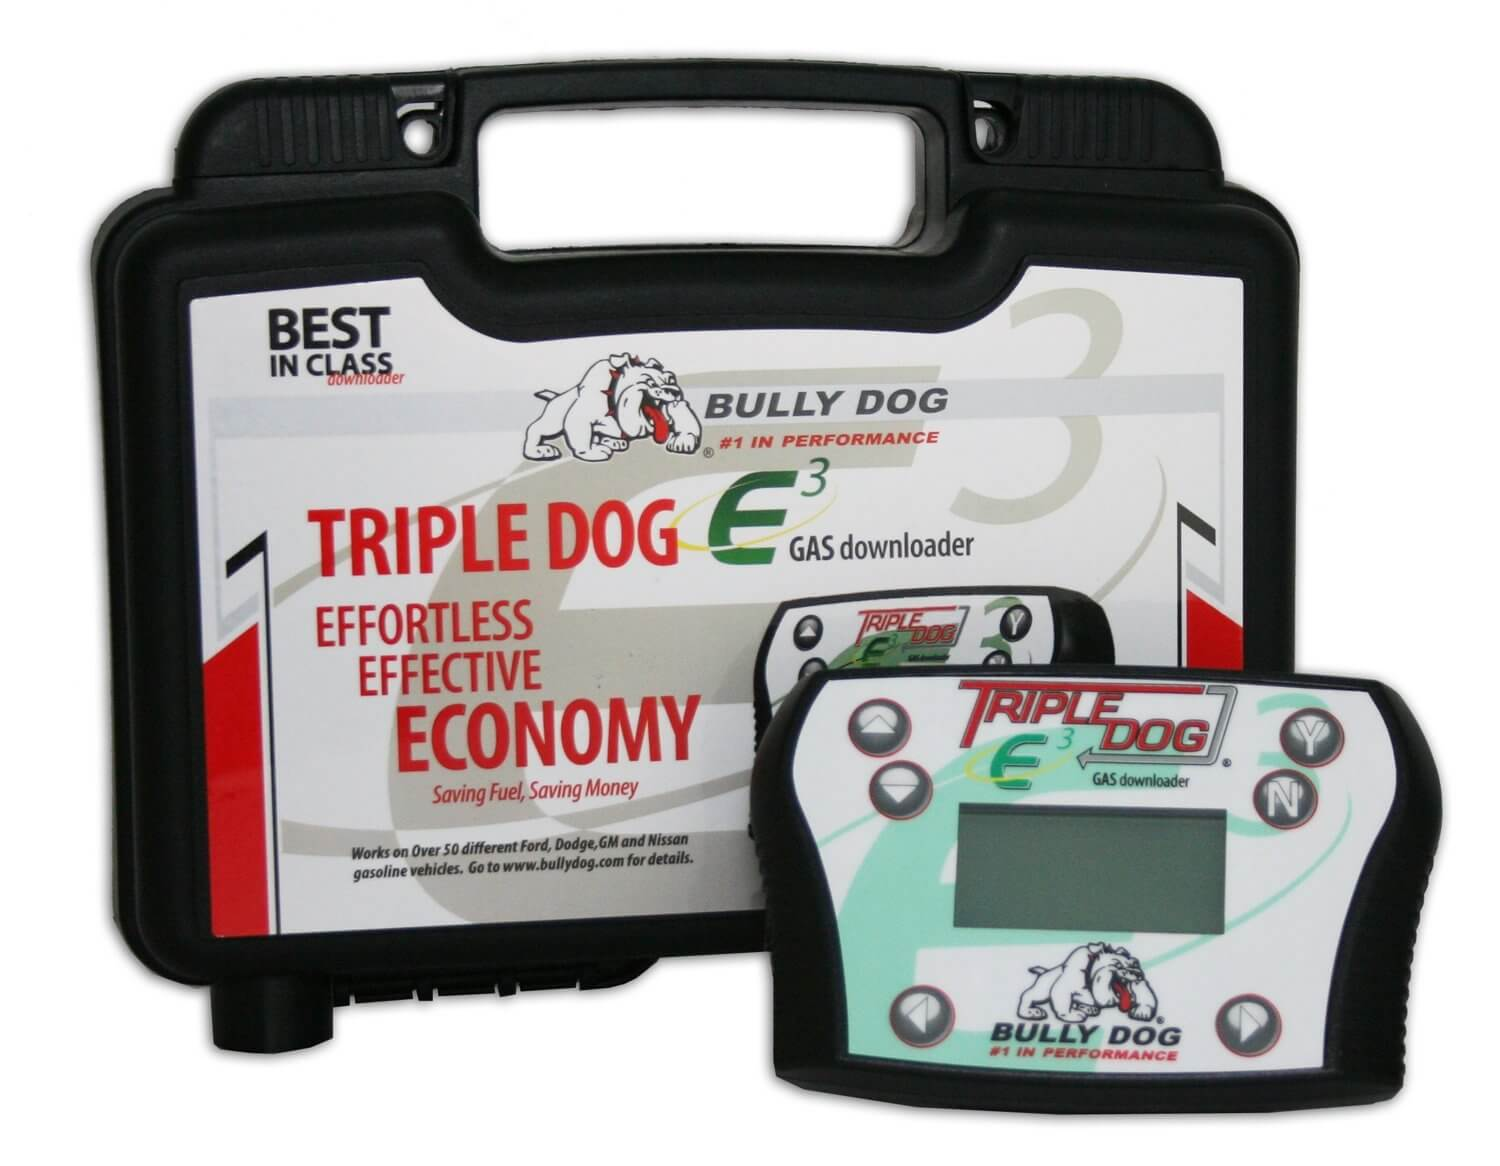 Triple Dog E3 Gas Downloader